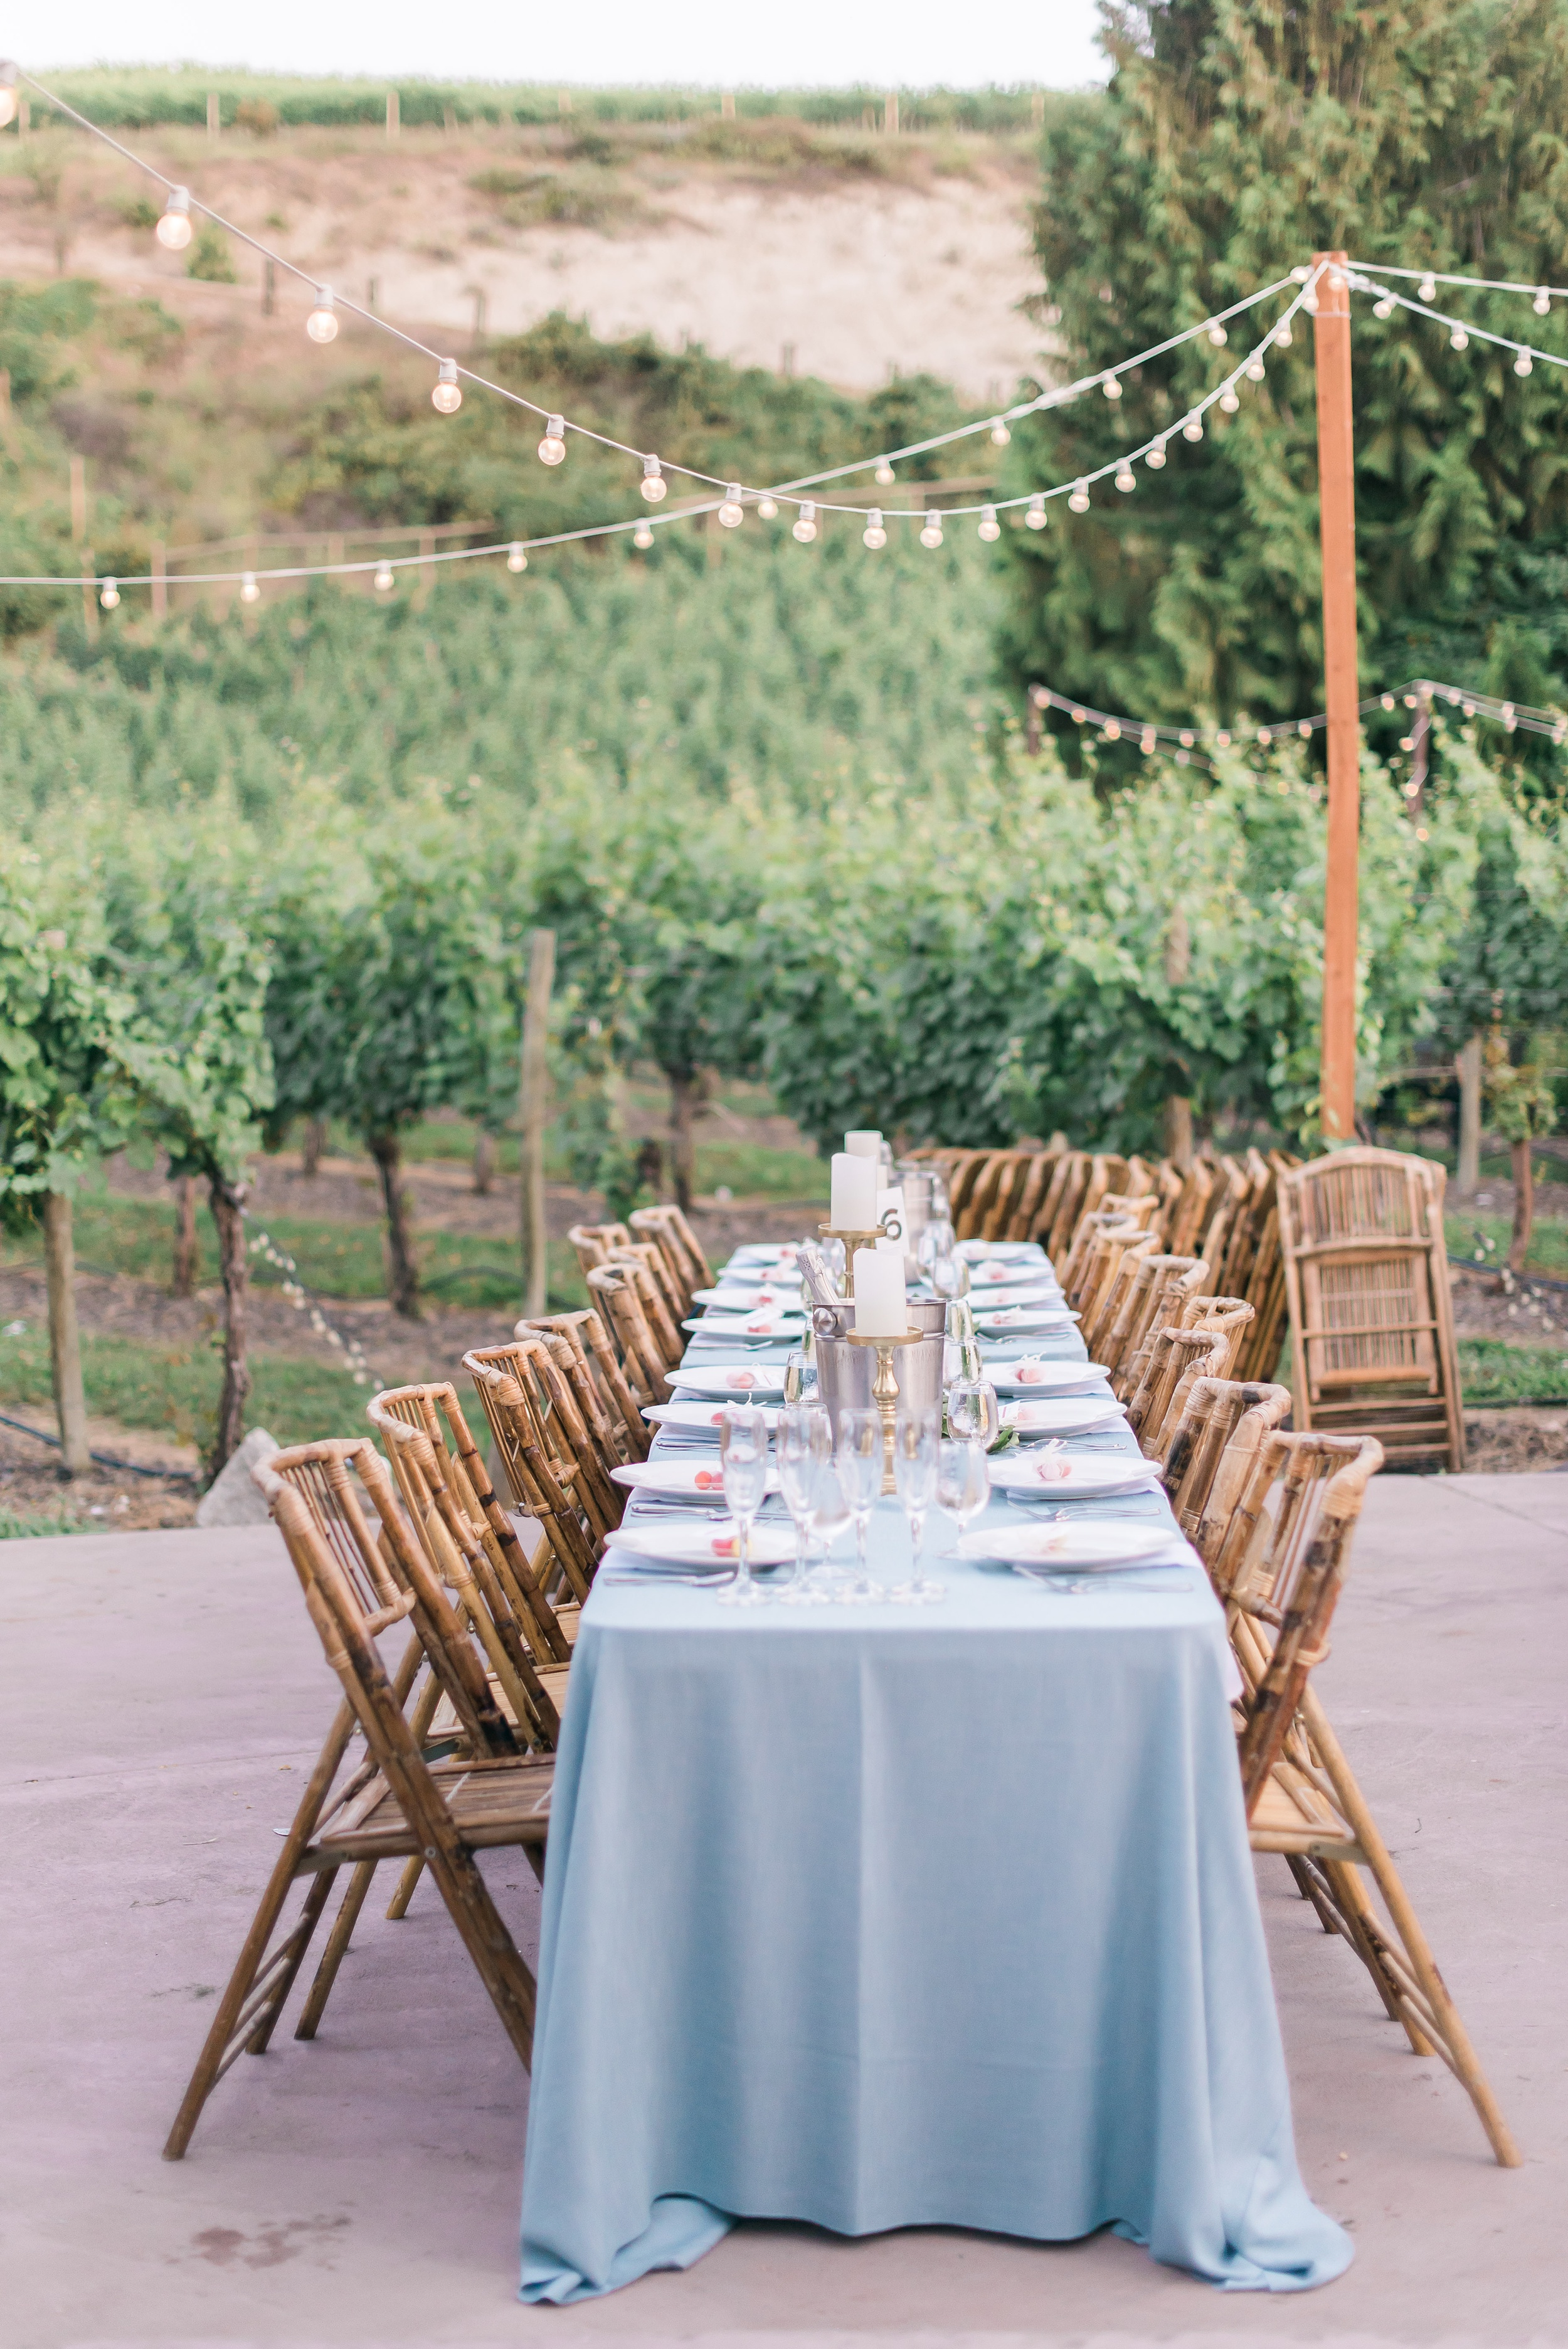 David & Kylie's Karma Vineyards Chelan Wedding.